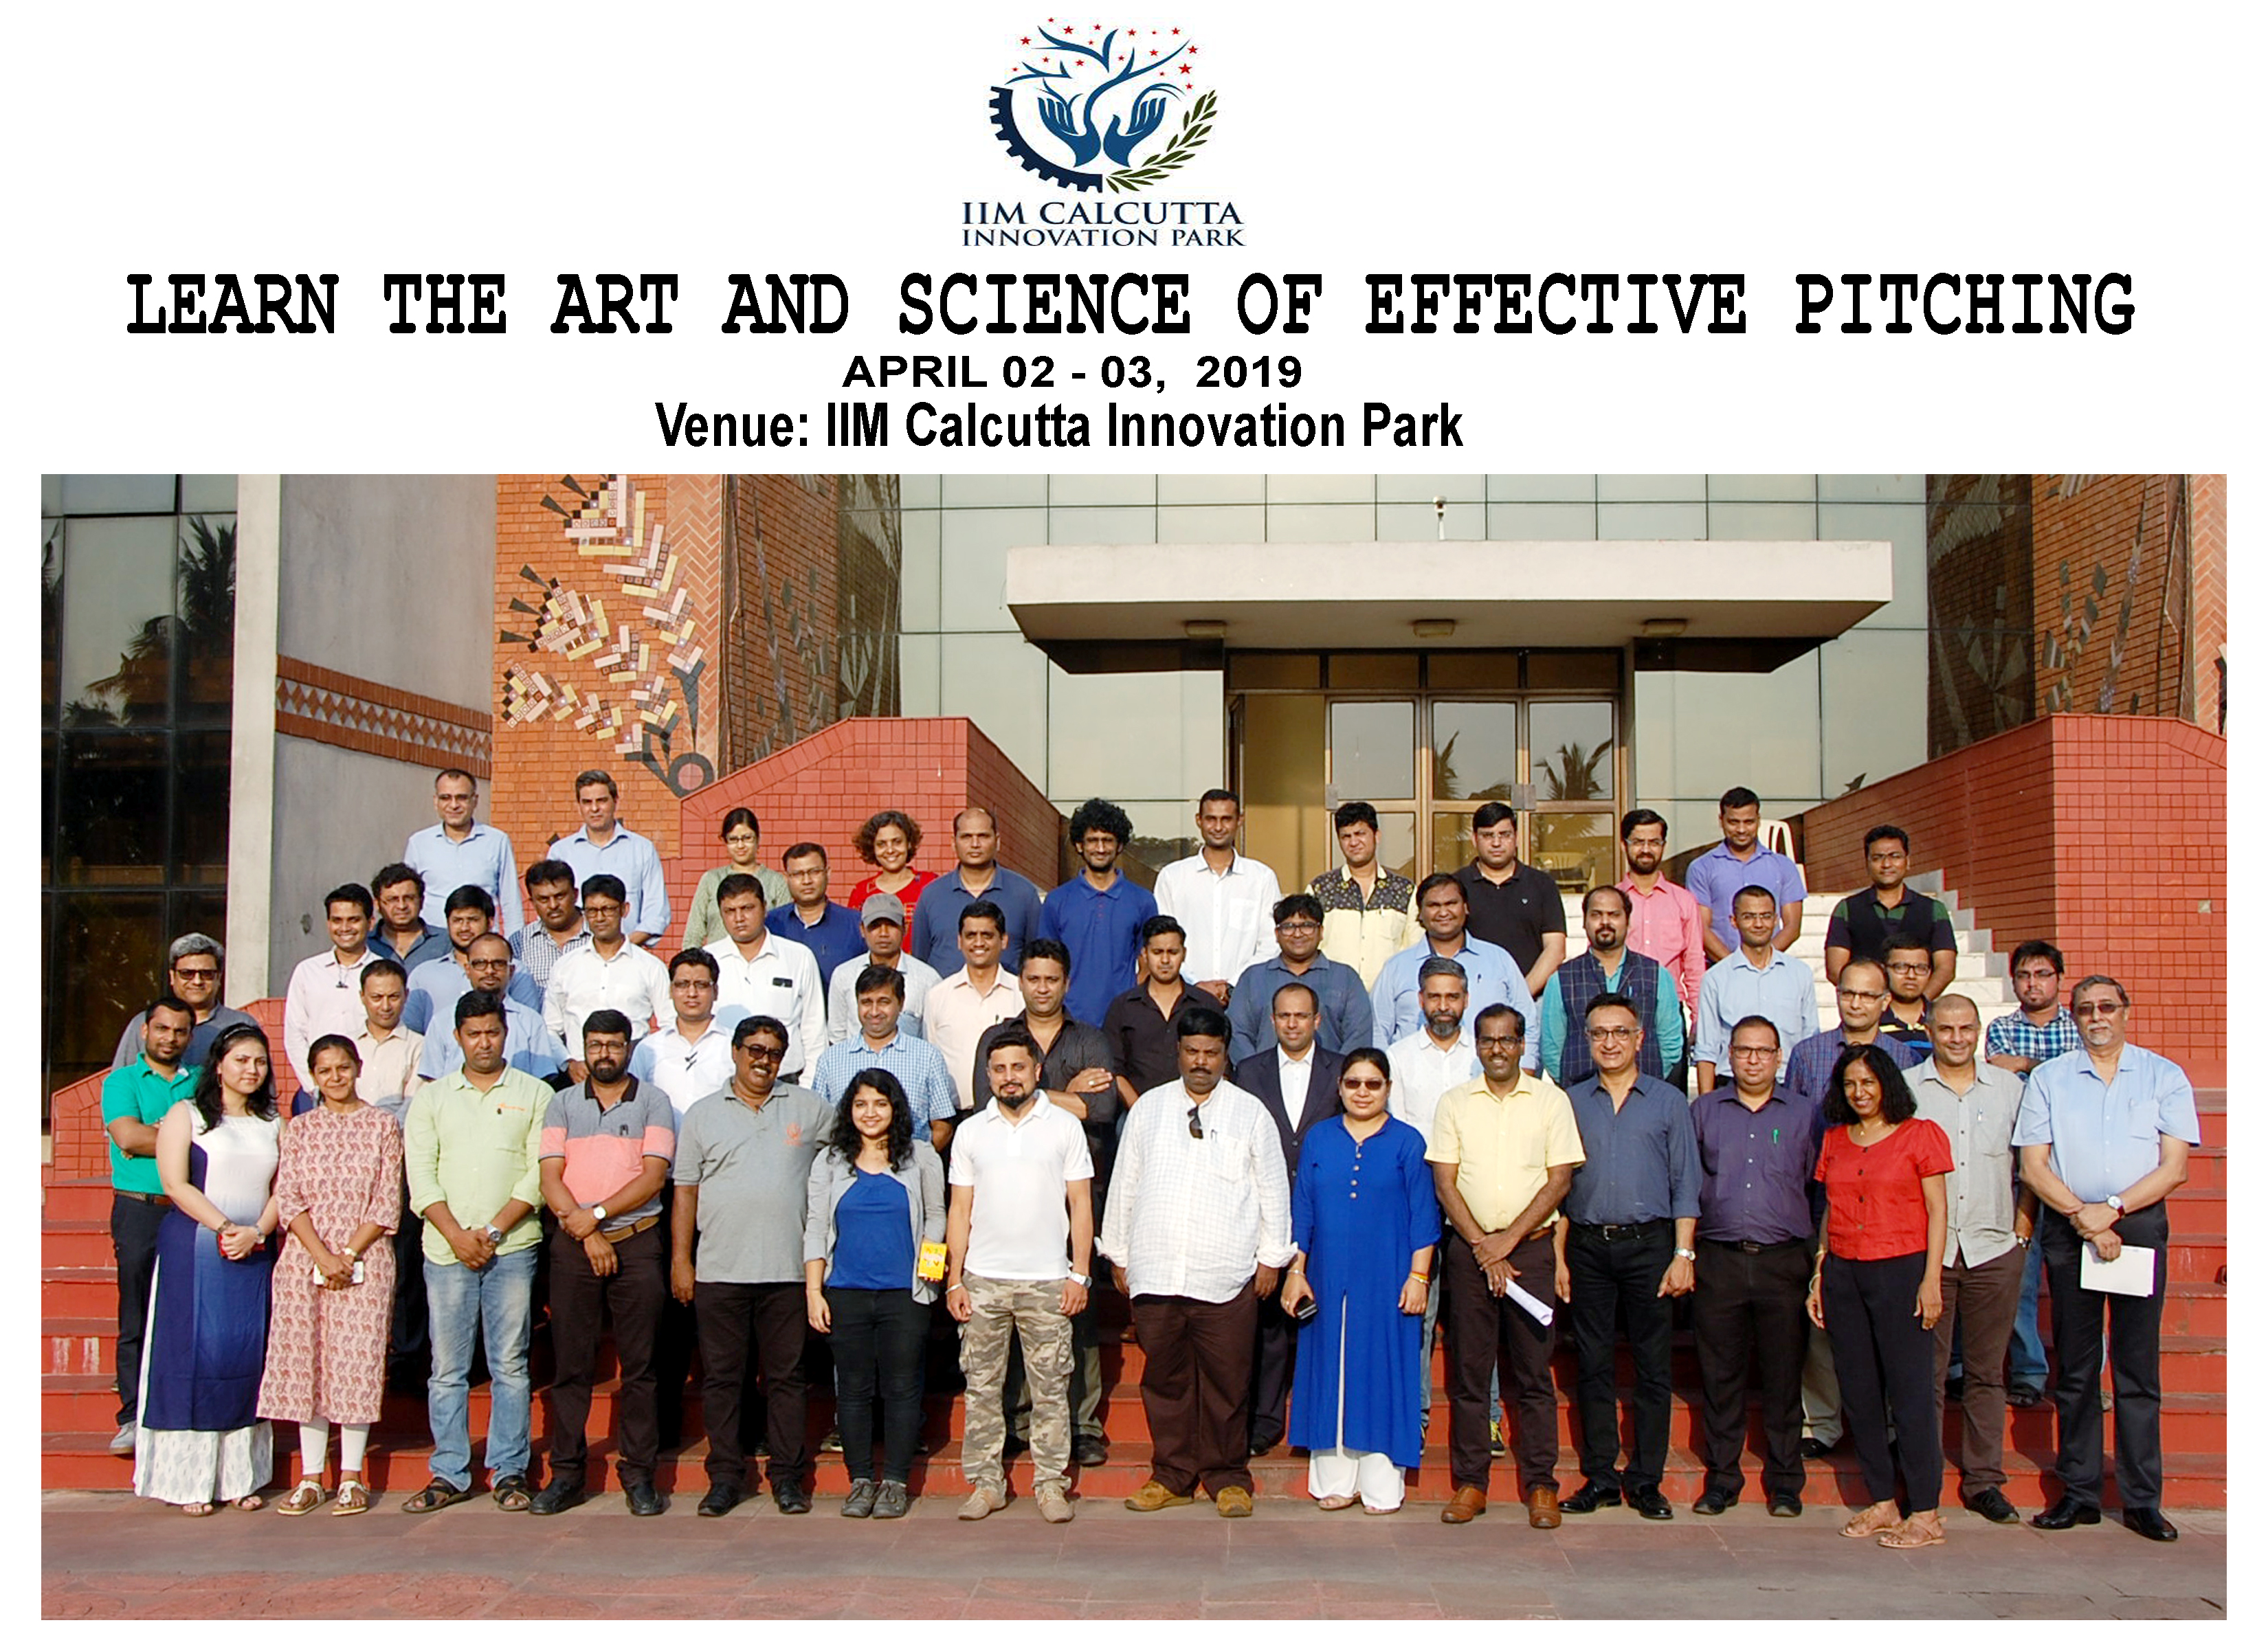 The 'Learn the Art and Science of Pitching' Workshop